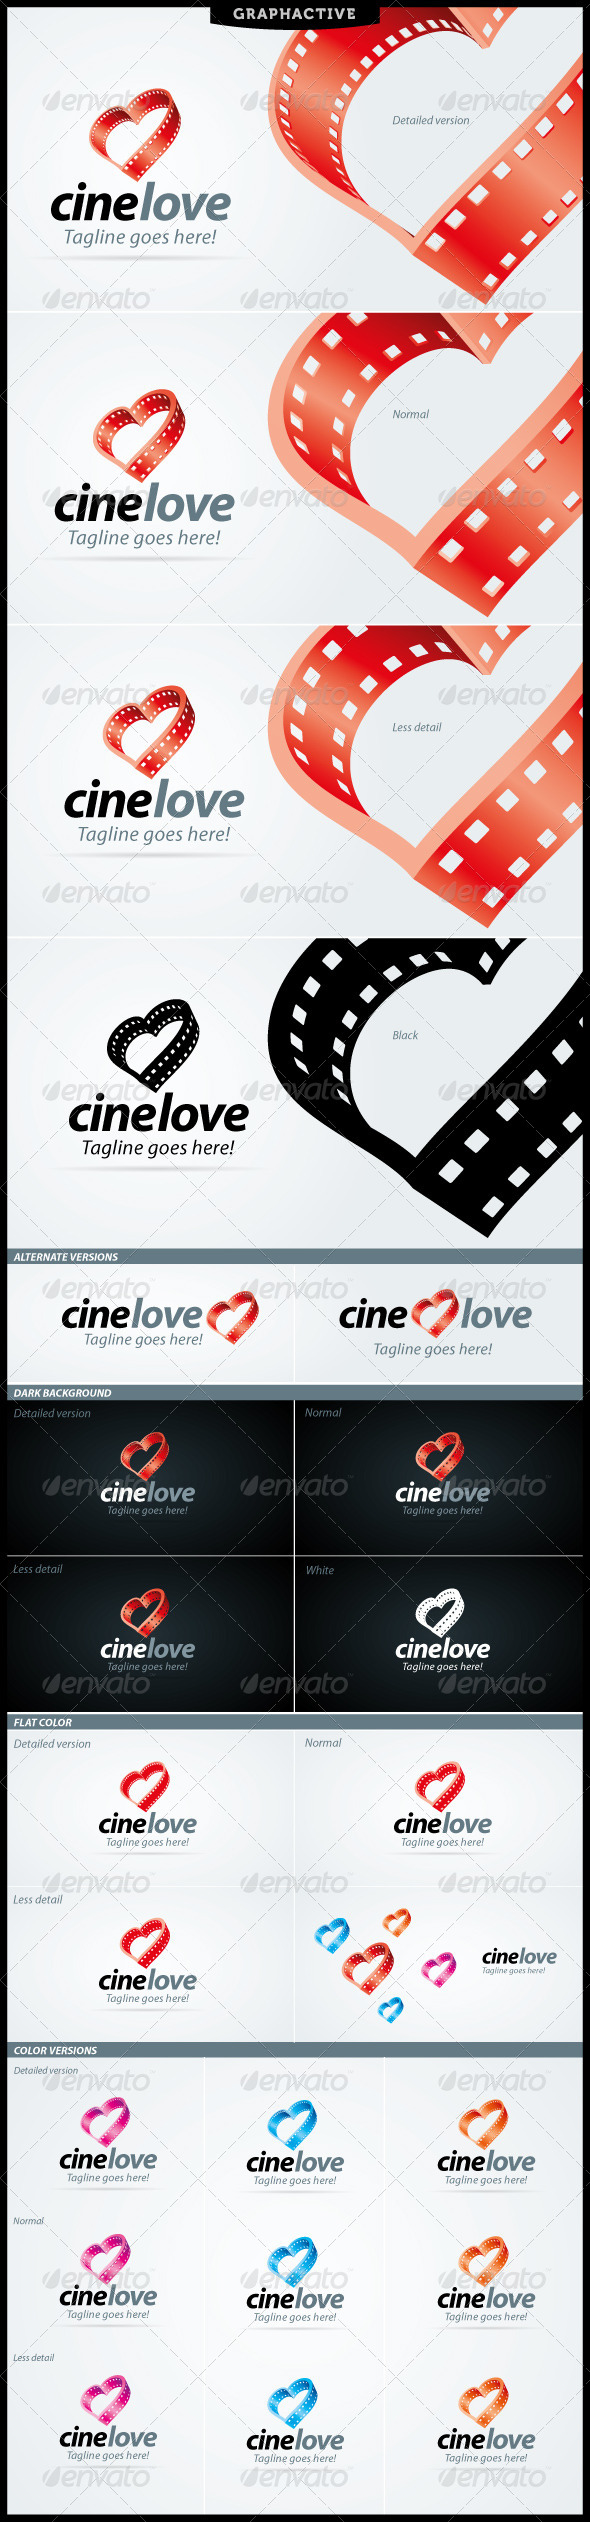 CineLove Logo For Video And Film Business